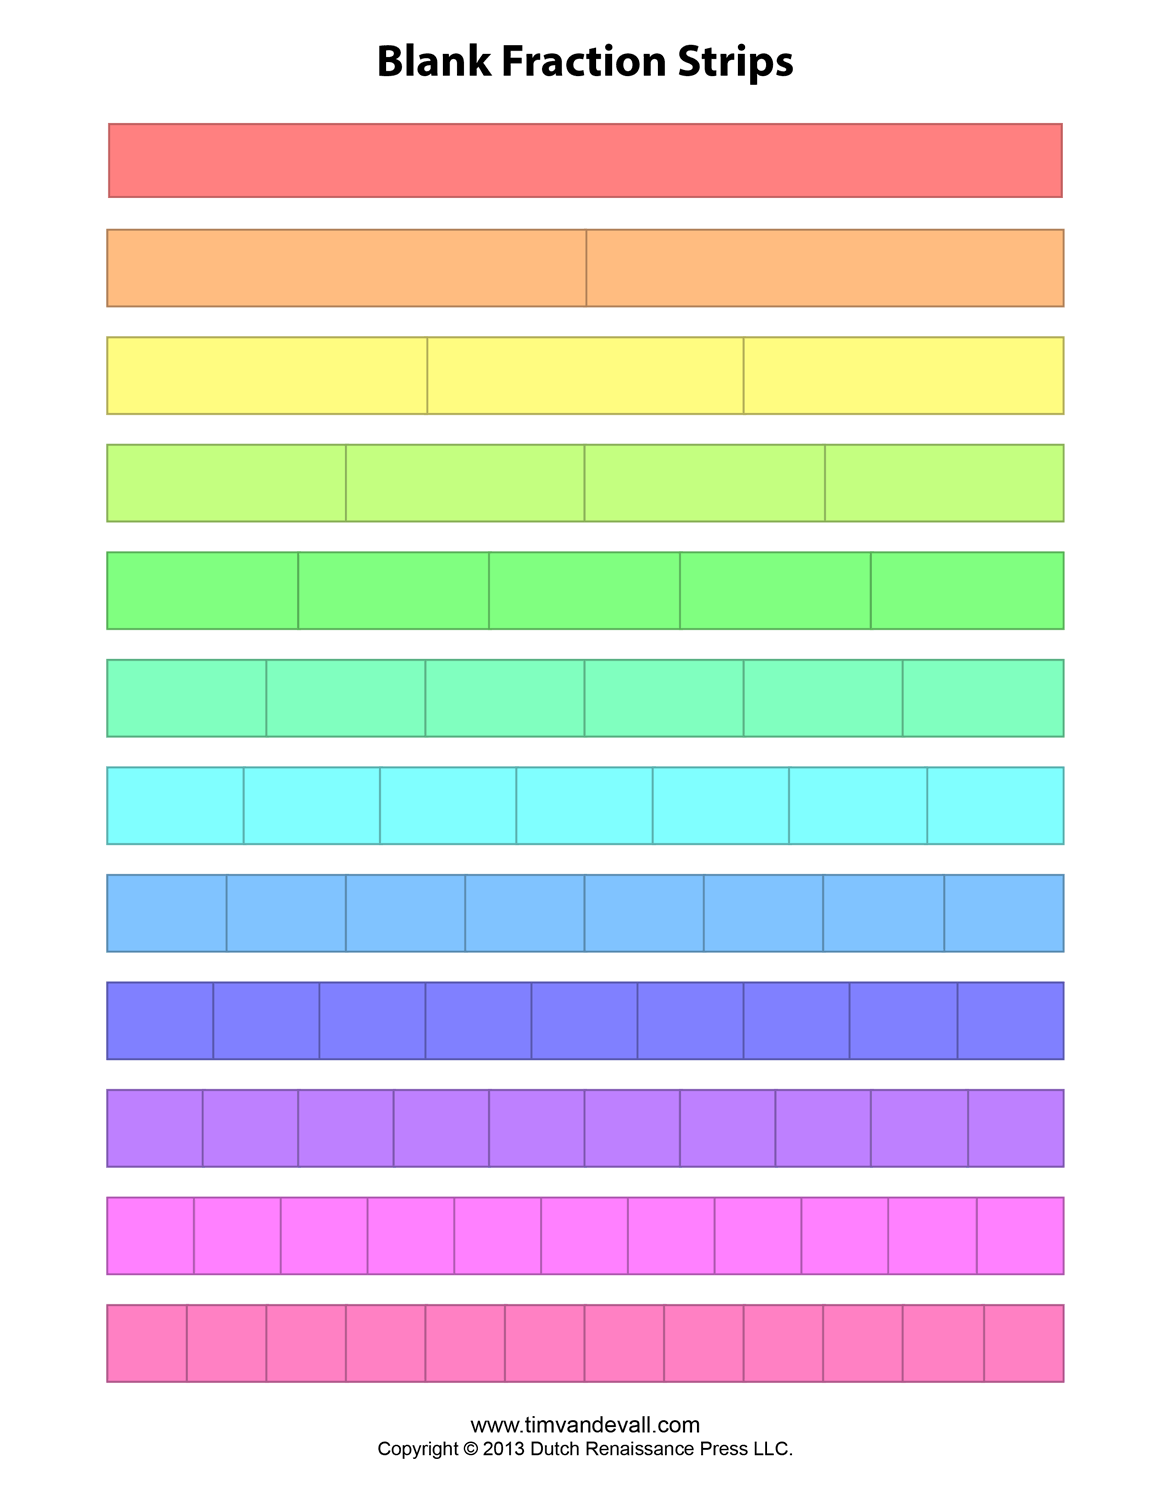 Blank Fraction Bars - Blank Fraction Strips Printable, Printable Blank ...